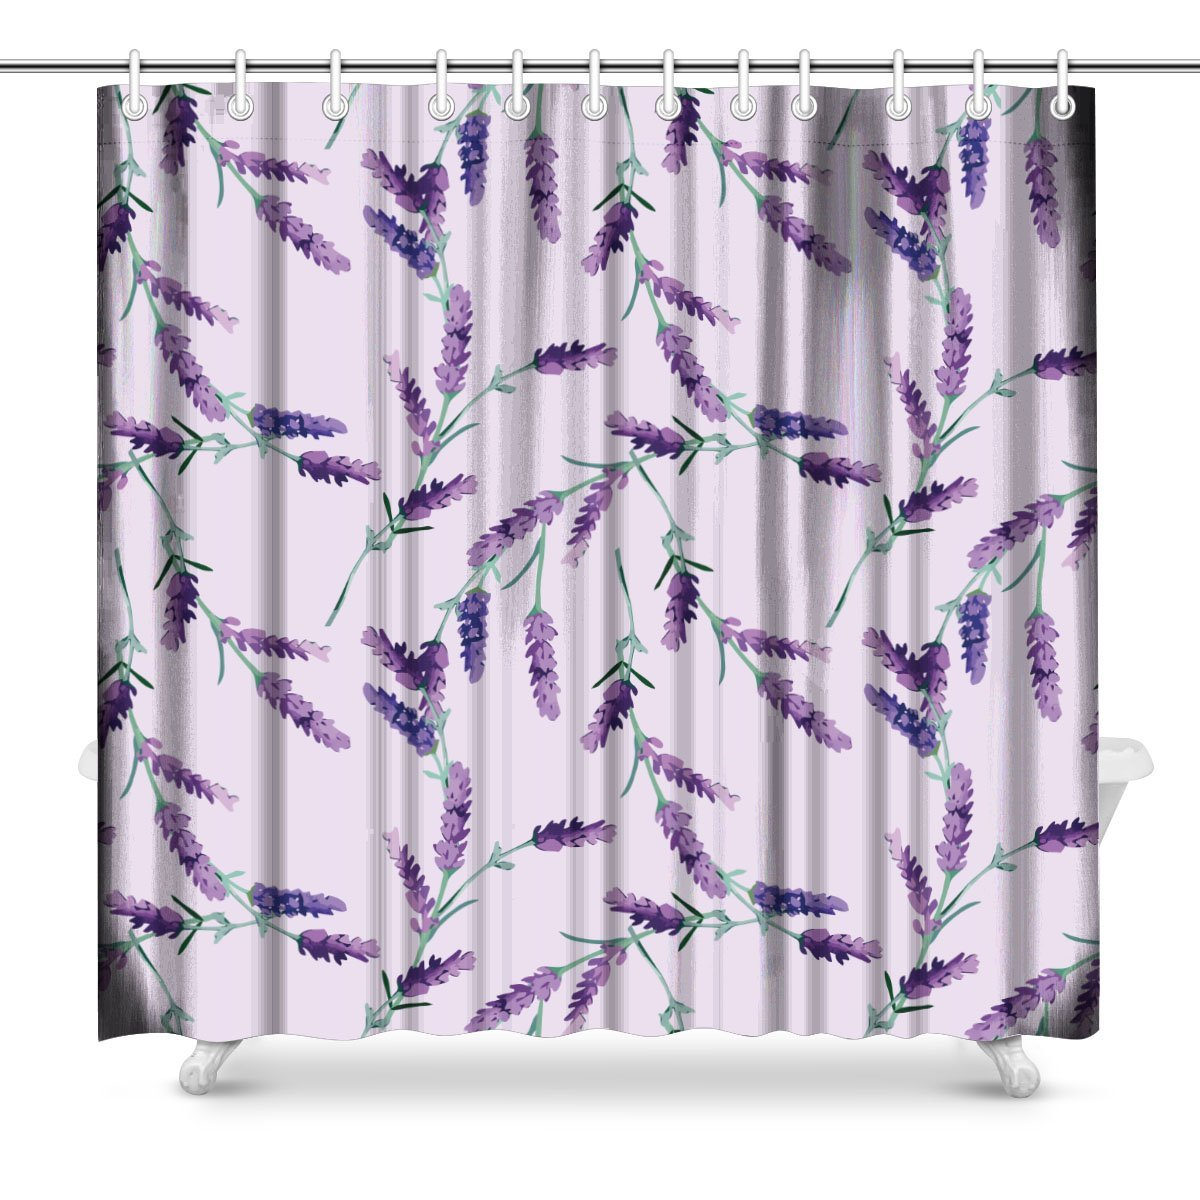 Us 11 67 68 Off Aplysia Lavender Polyester Fabric Bathroom Shower Curtain Set 72 Inches In Shower Curtains From Home Garden On Aliexpress